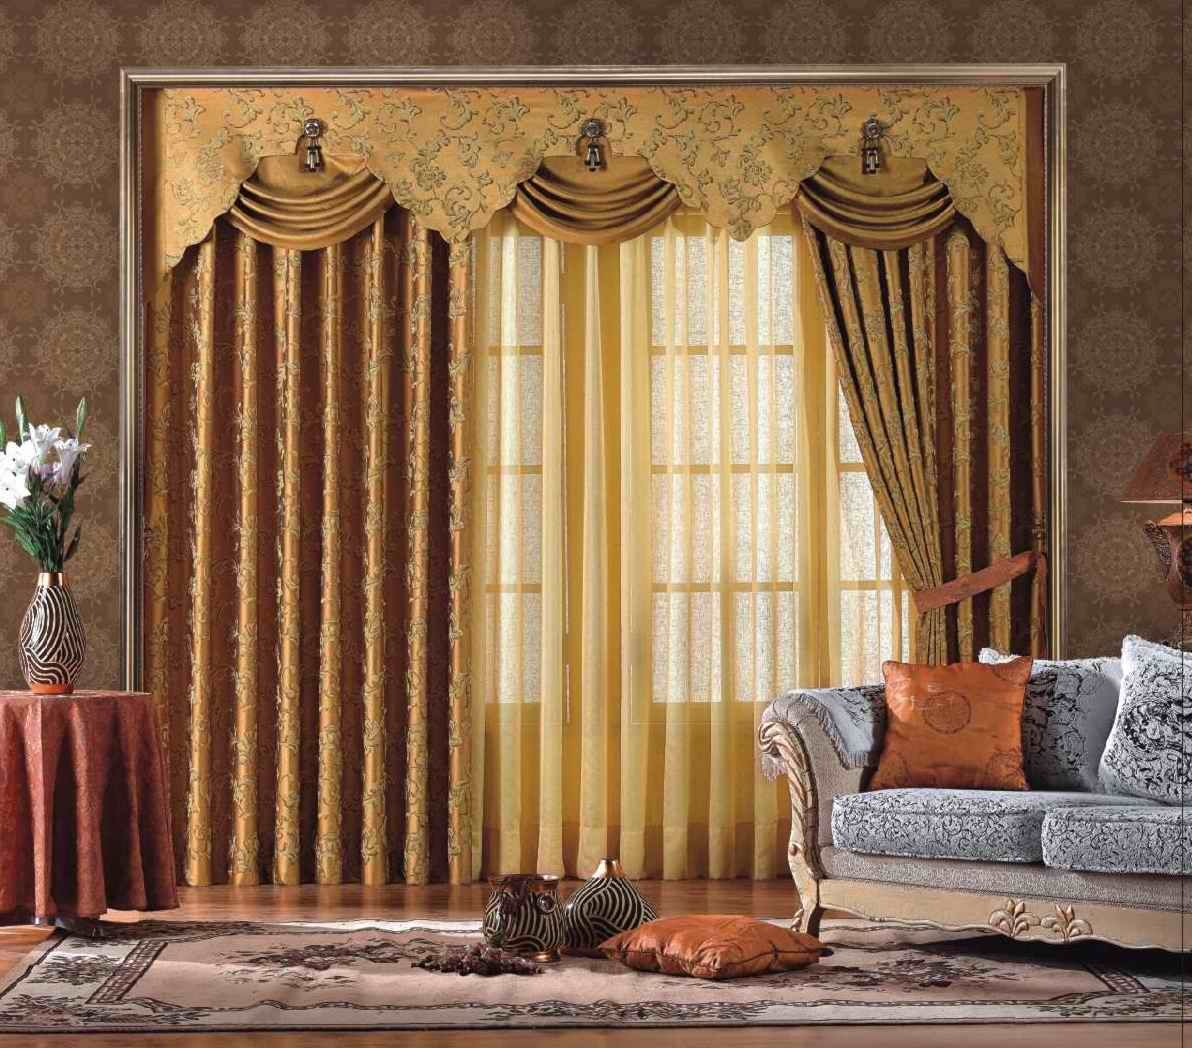 Living Room Curtain Design Captivating Architecture  Living Room Curtains With Valance Sutntljr Gorgeous Inspiration Design